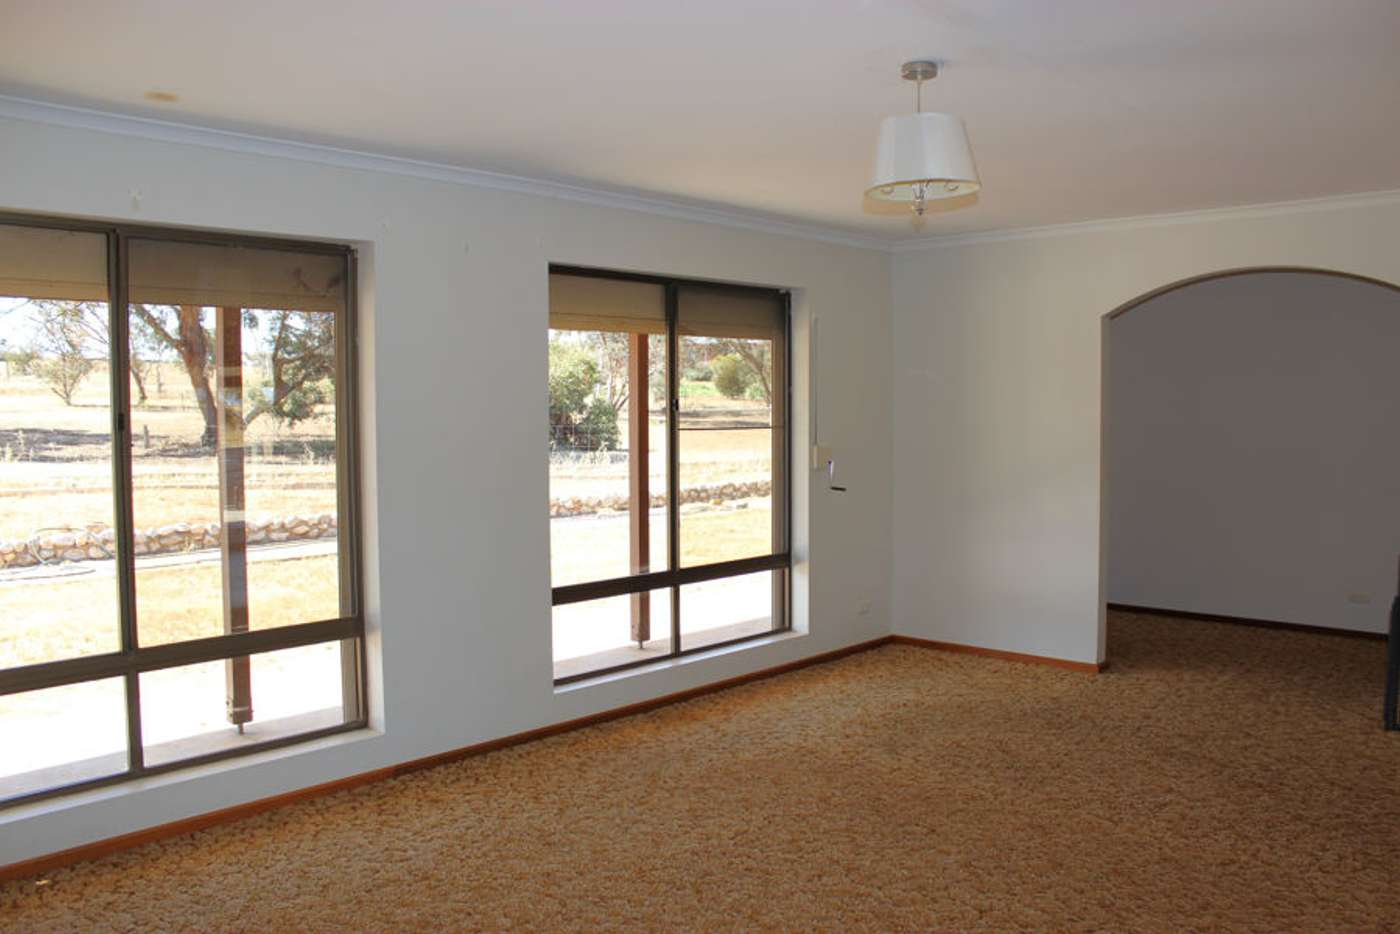 Fifth view of Homely house listing, 104 Ridley Road, Mannum SA 5238